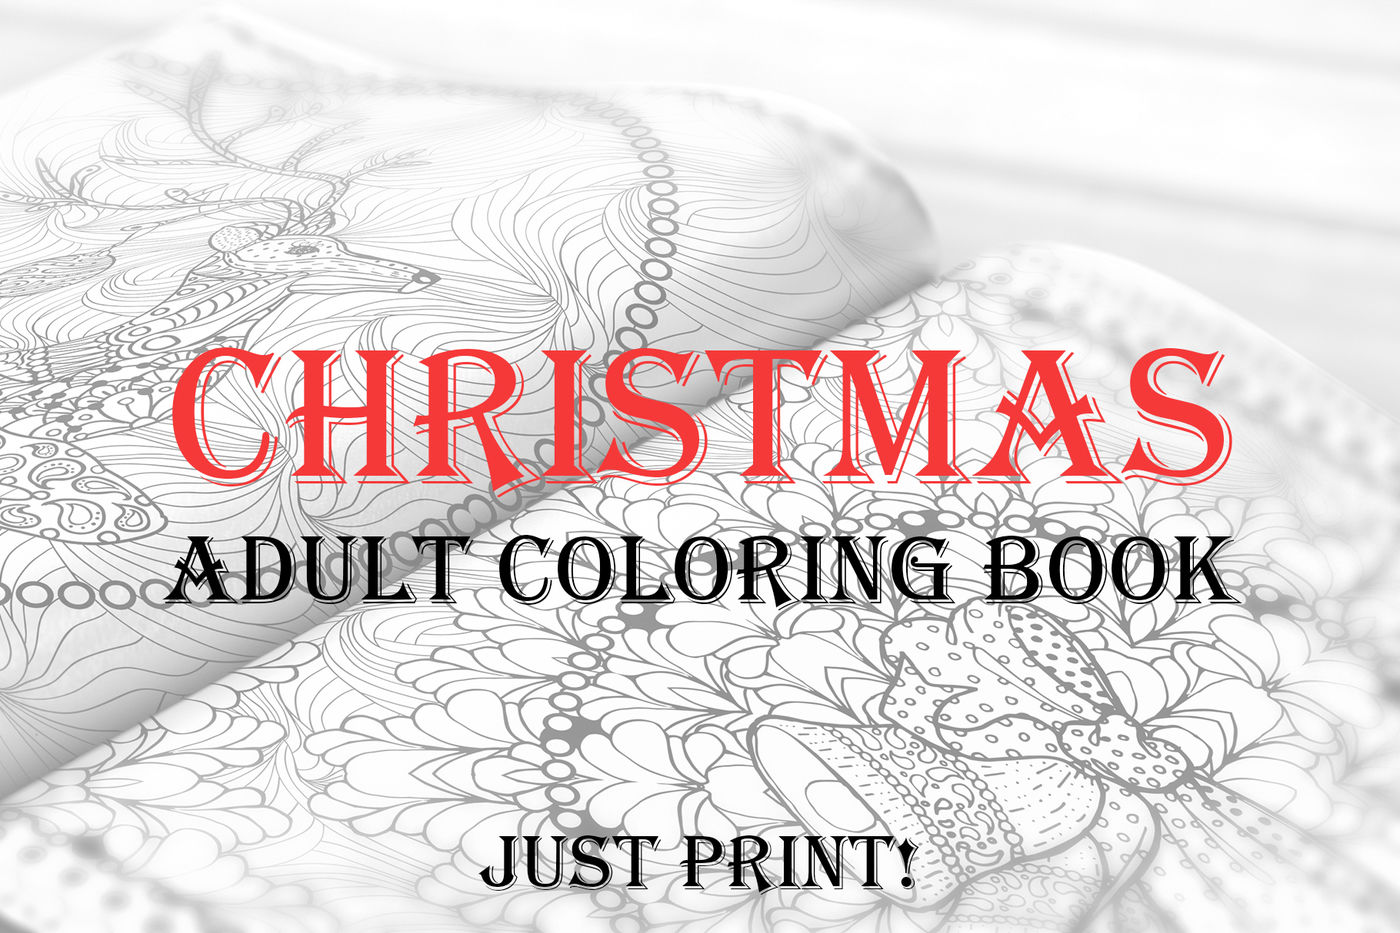 Calligraphy Fonts Books Pdf Christmas Adult Coloring Book Pdf Eps Jpeg By Ilonitta